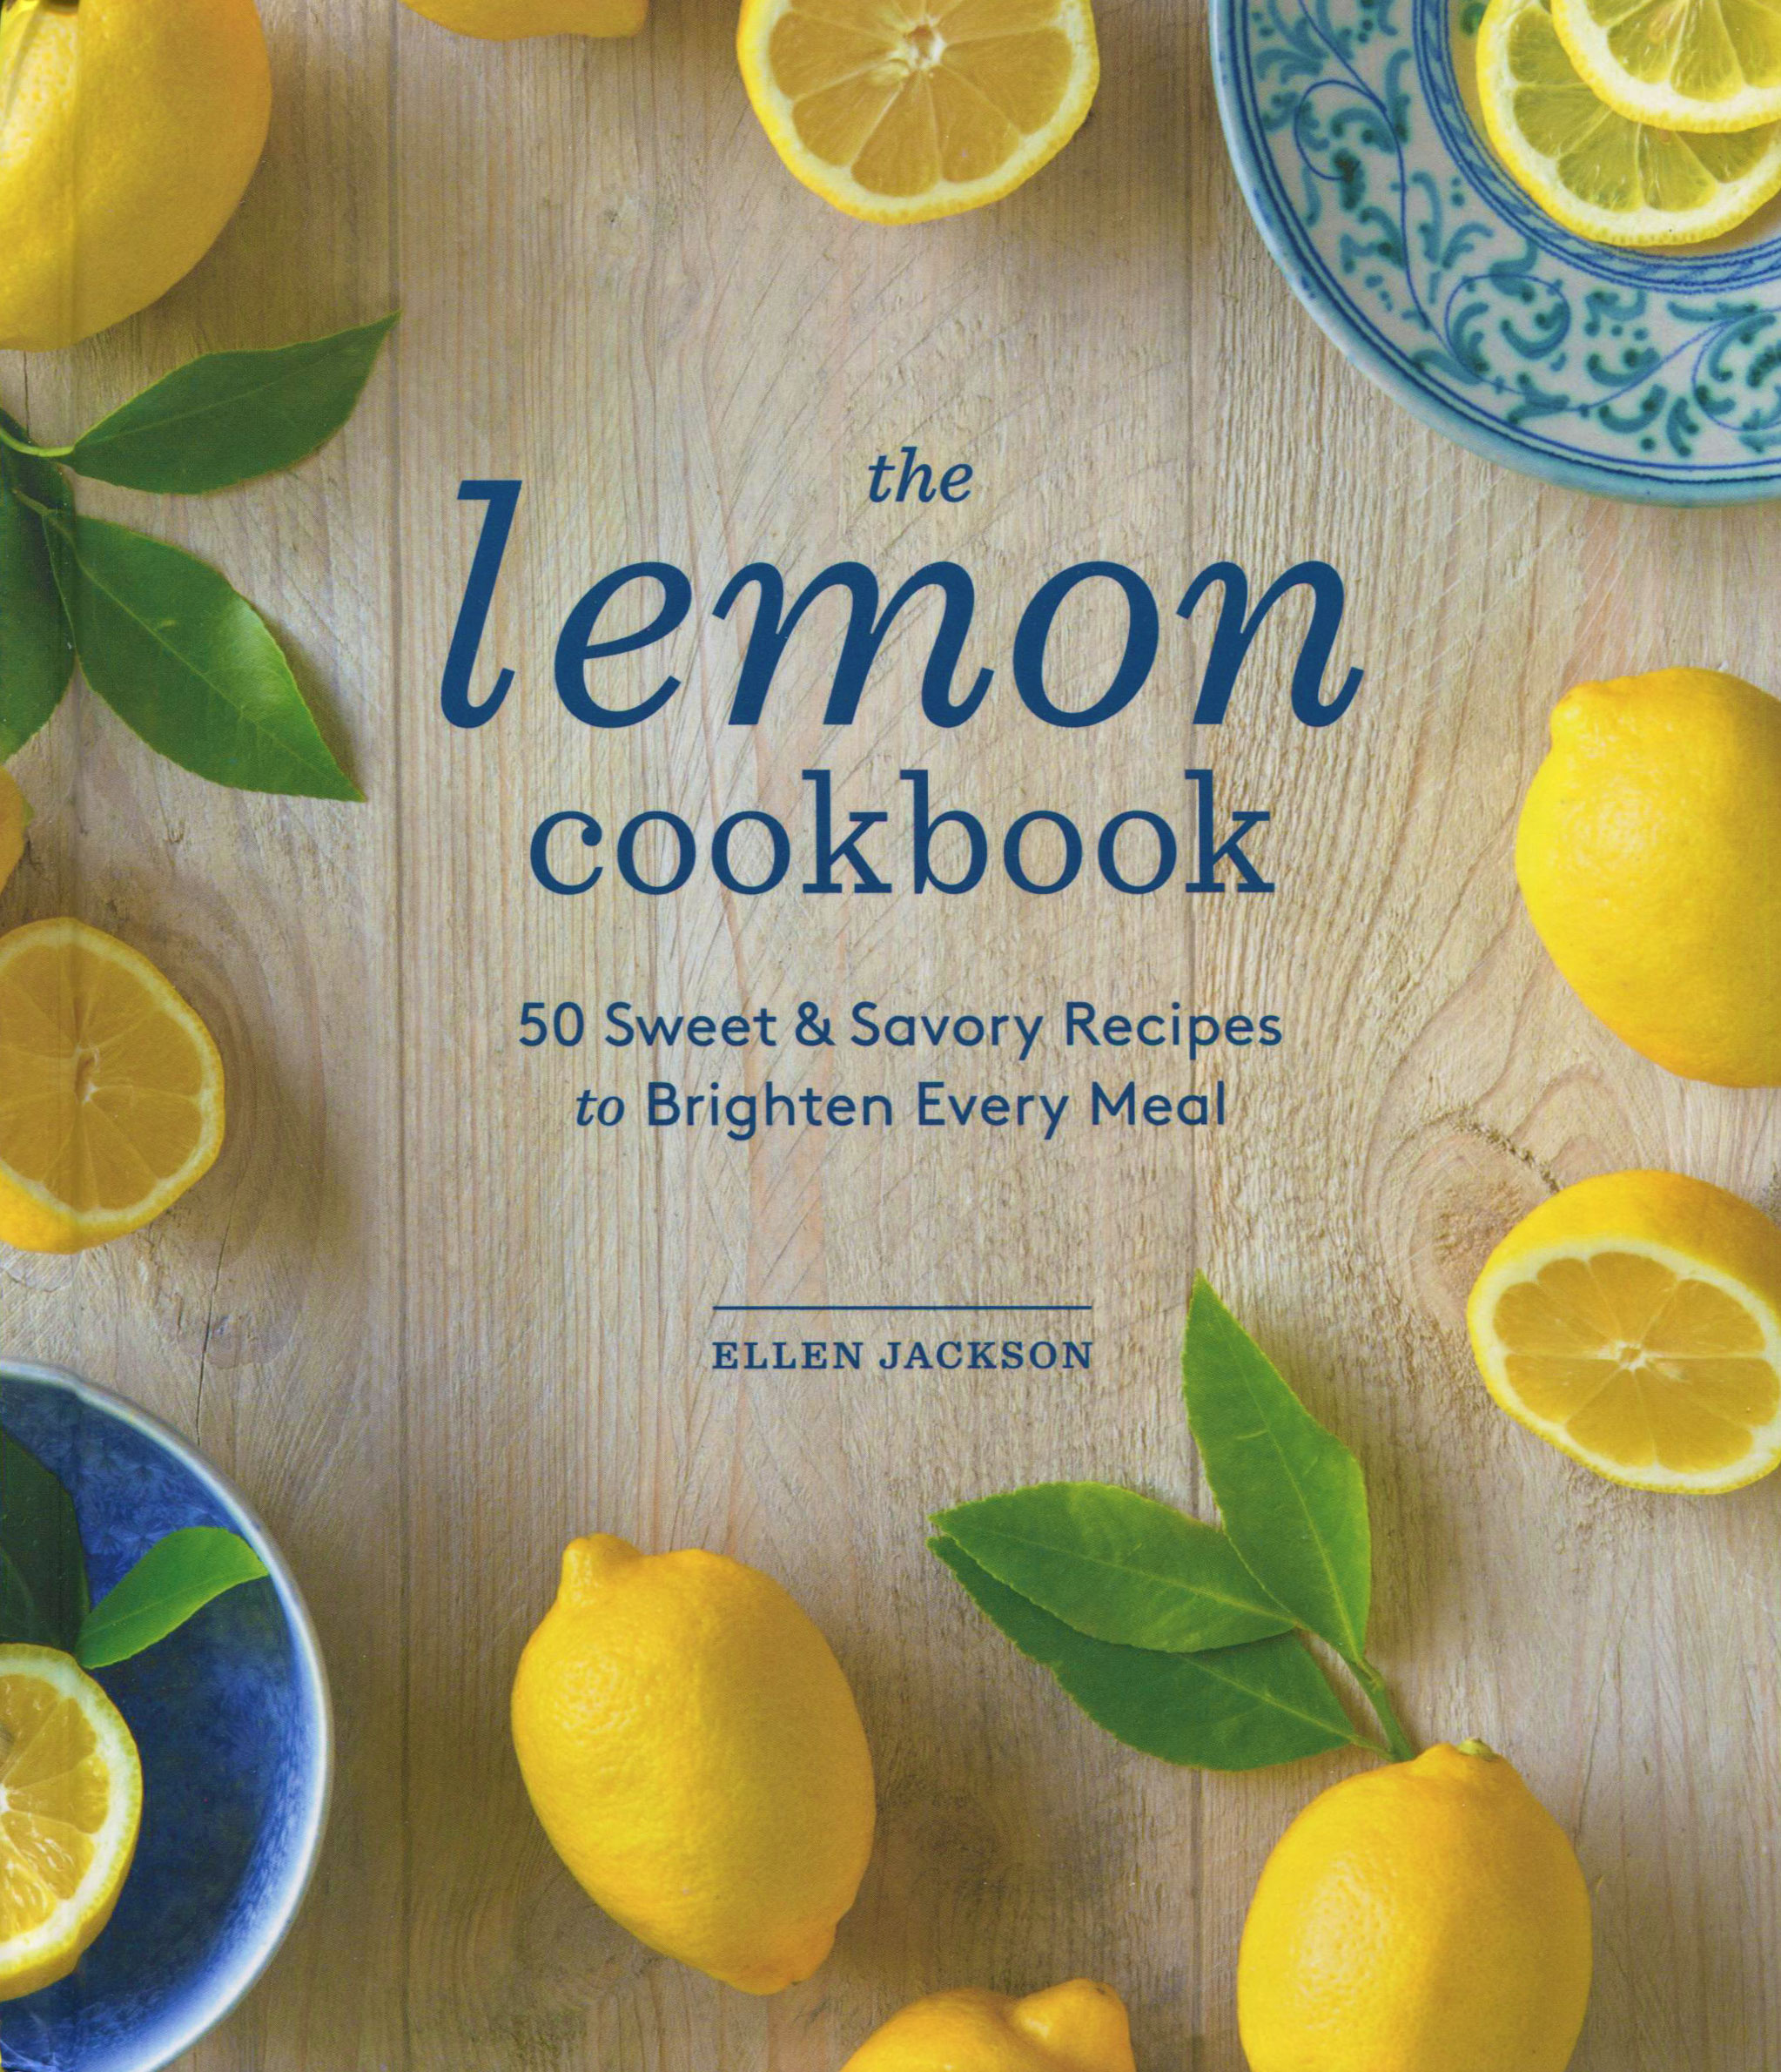 A Summer Cookbook for You While We Are in Yellowstone: The Lemon Cookbook